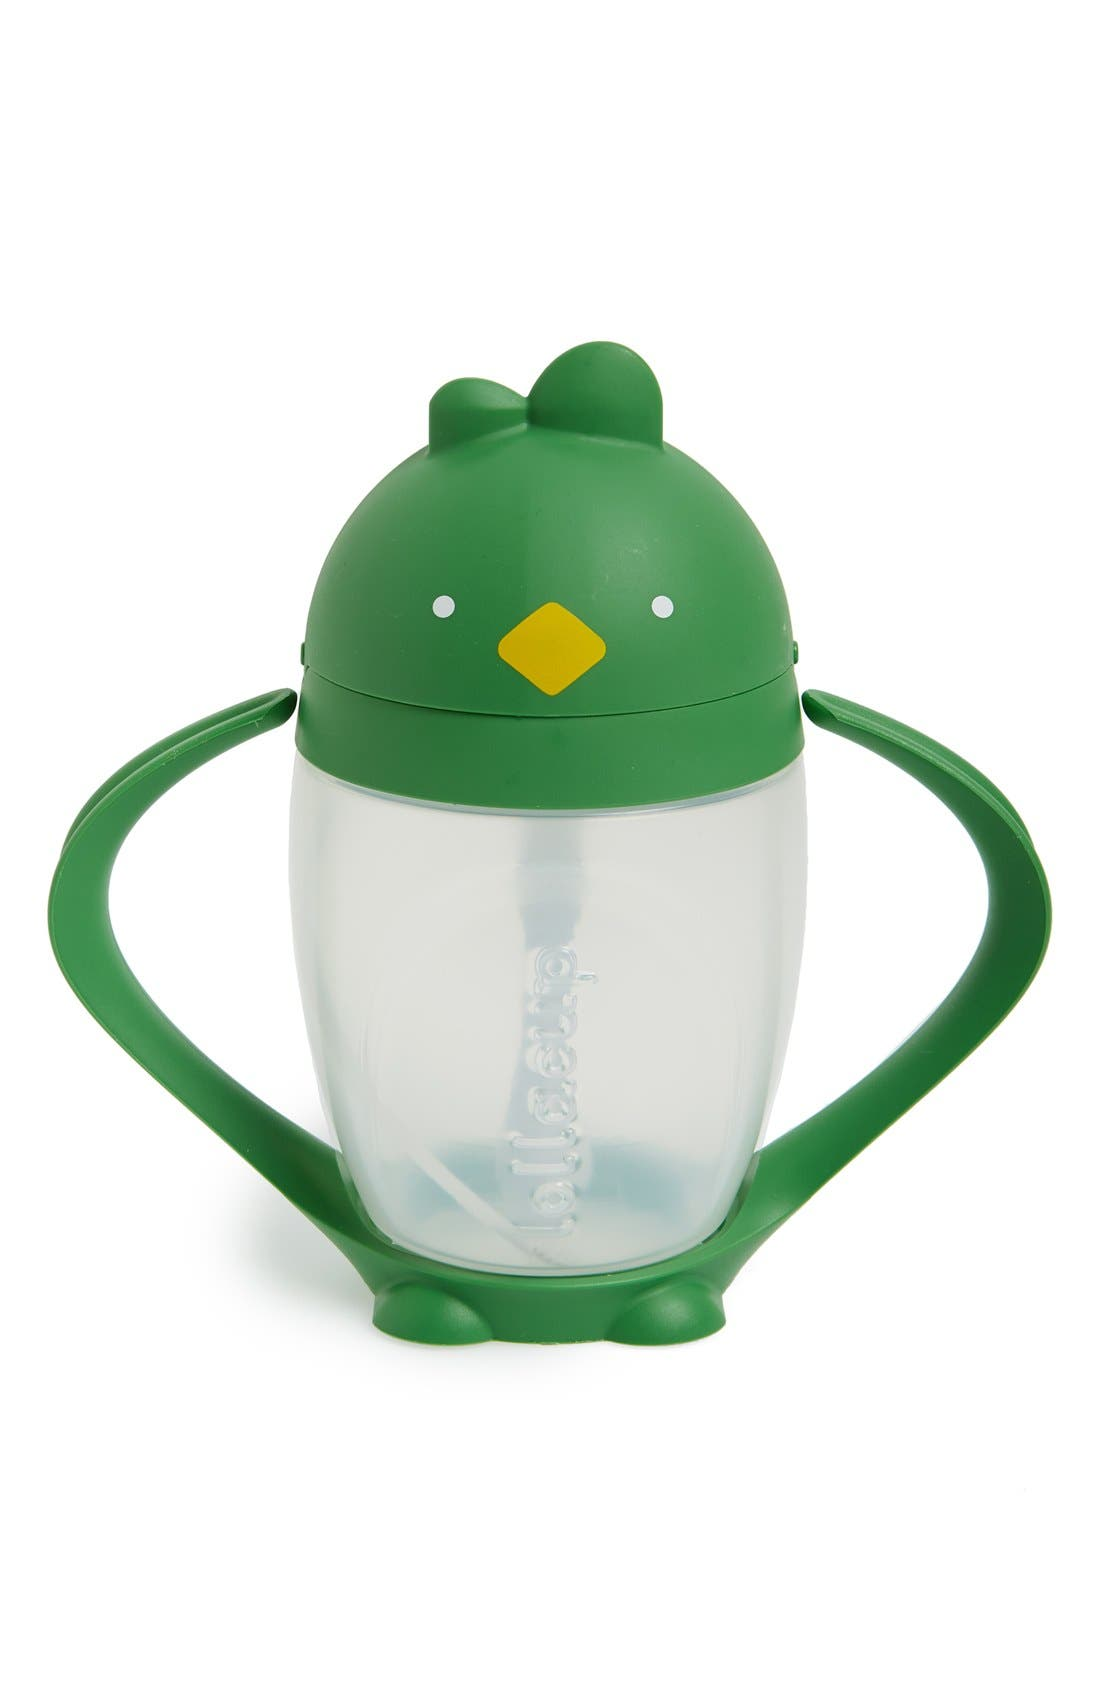 'Lollacup' Sippy Cup,                             Main thumbnail 1, color,                             300